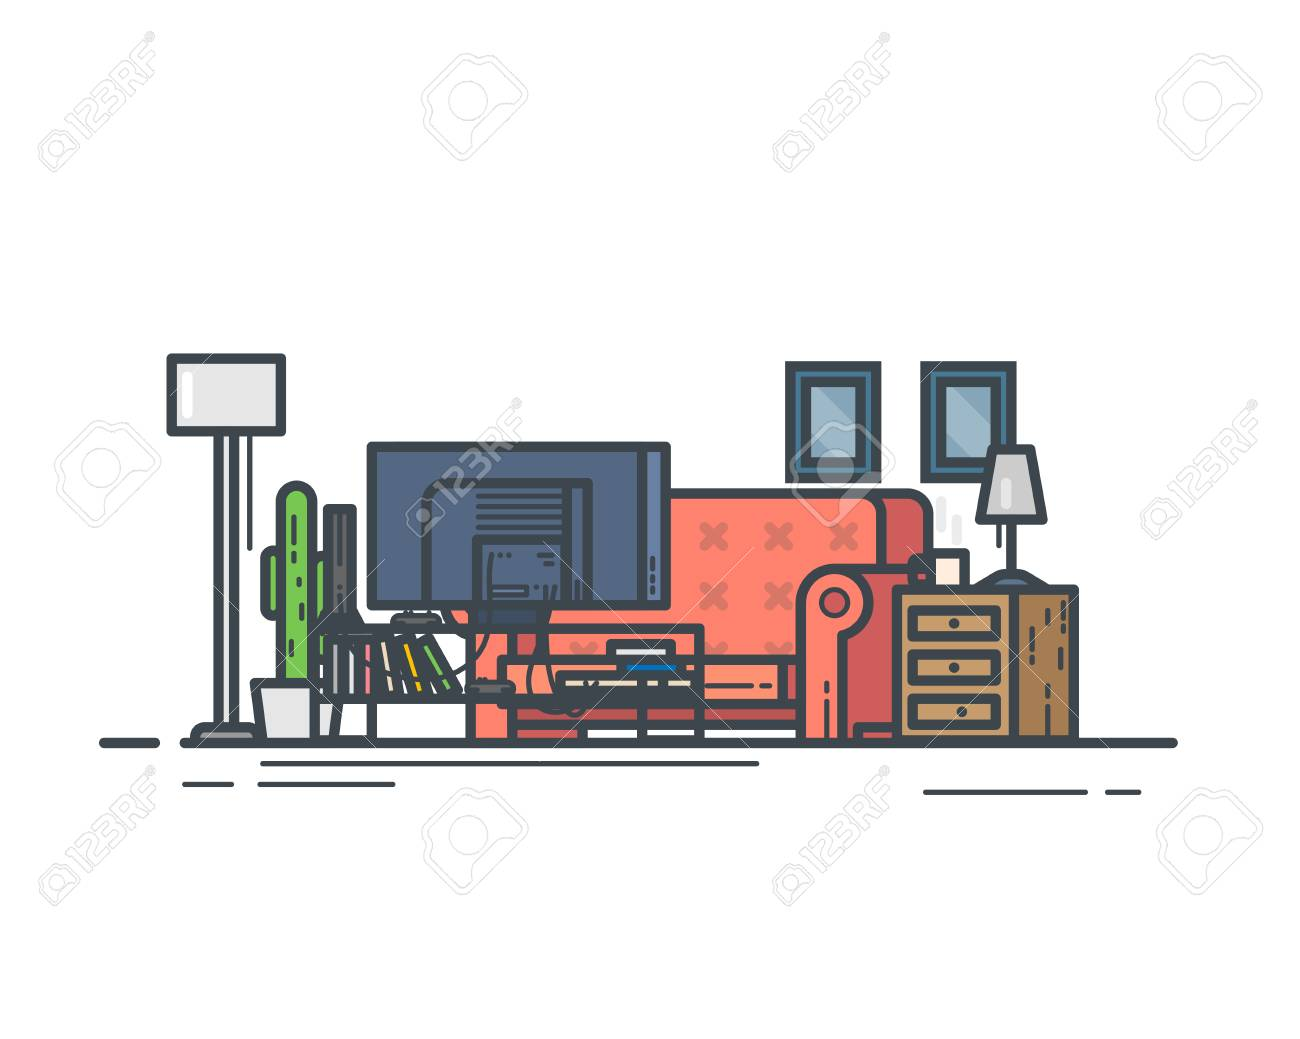 Living Room With Couch And Lamp Home Entertainment Tv And Game Royalty Free Cliparts Vectors And Stock Illustration Image 96754584